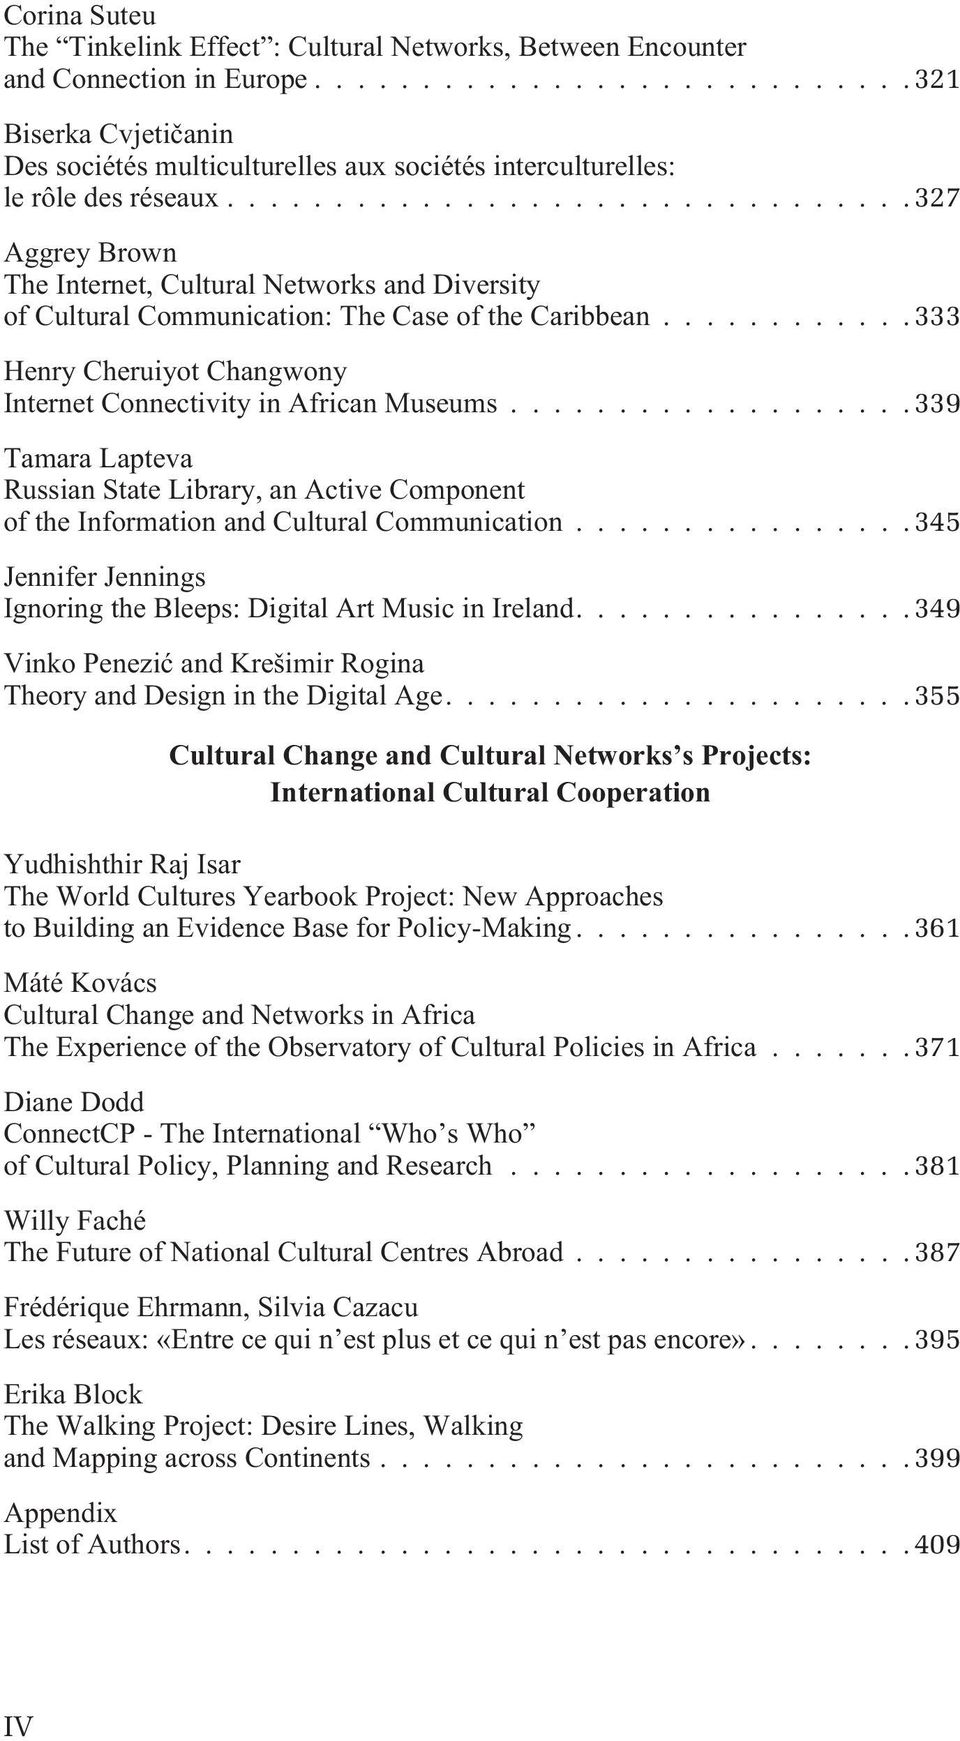 ..327 Aggrey Brown The Internet, Cultural Networks and Diversity of Cultural Communication: The Case of the Caribbean...333 Henry Cheruiyot Changwony Internet Connectivity in African Museums.